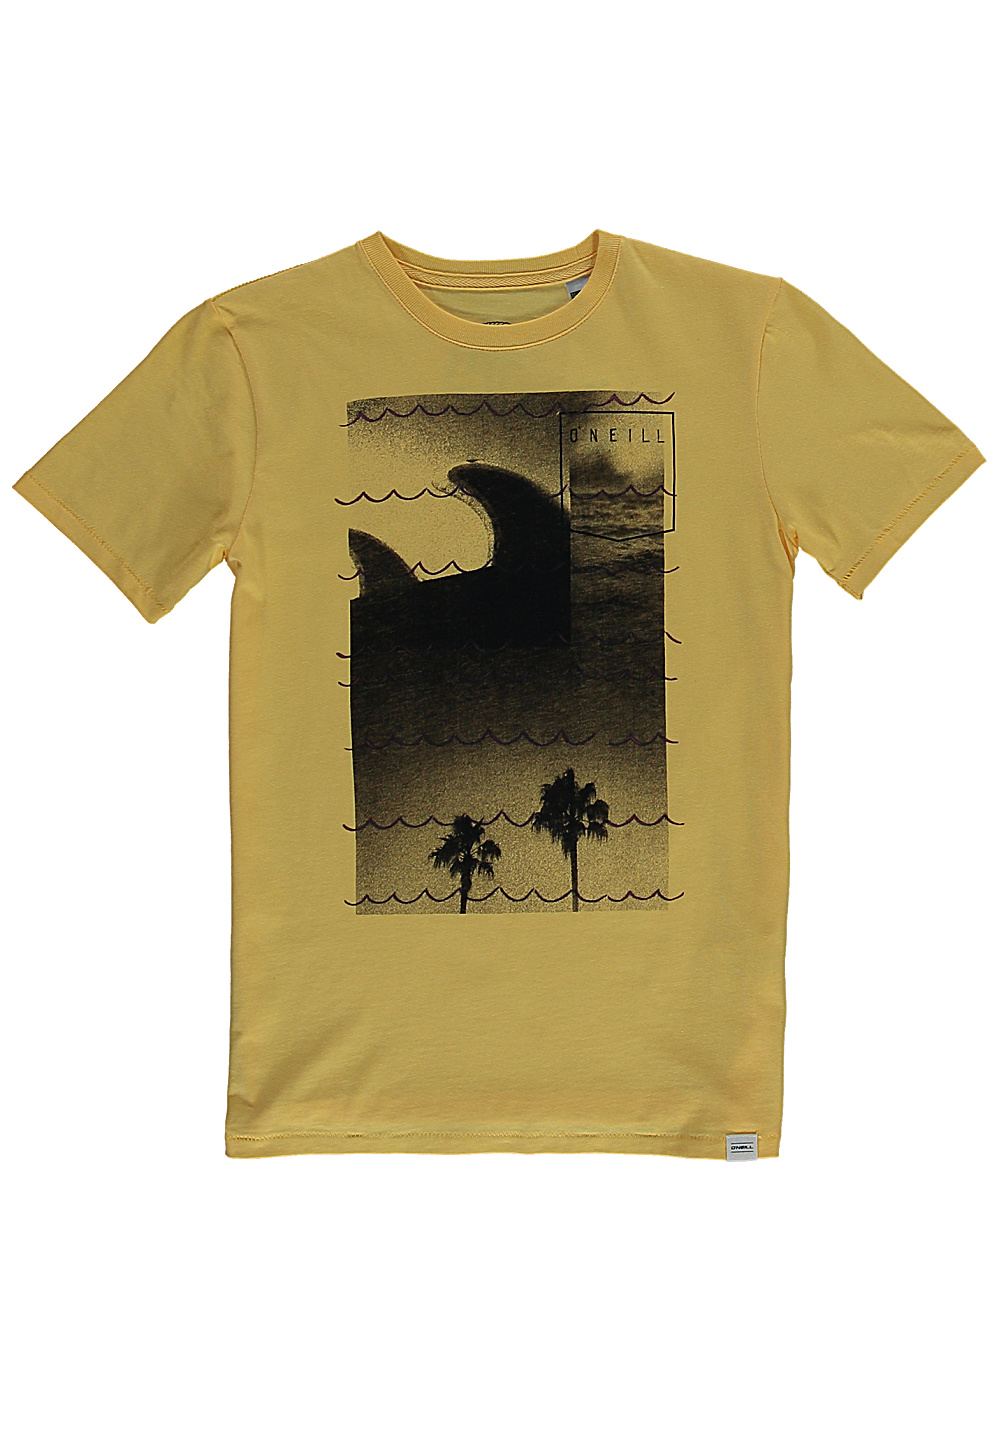 O 39 neill fins out t shirt for kids boys yellow planet for Yellow t shirt for kids